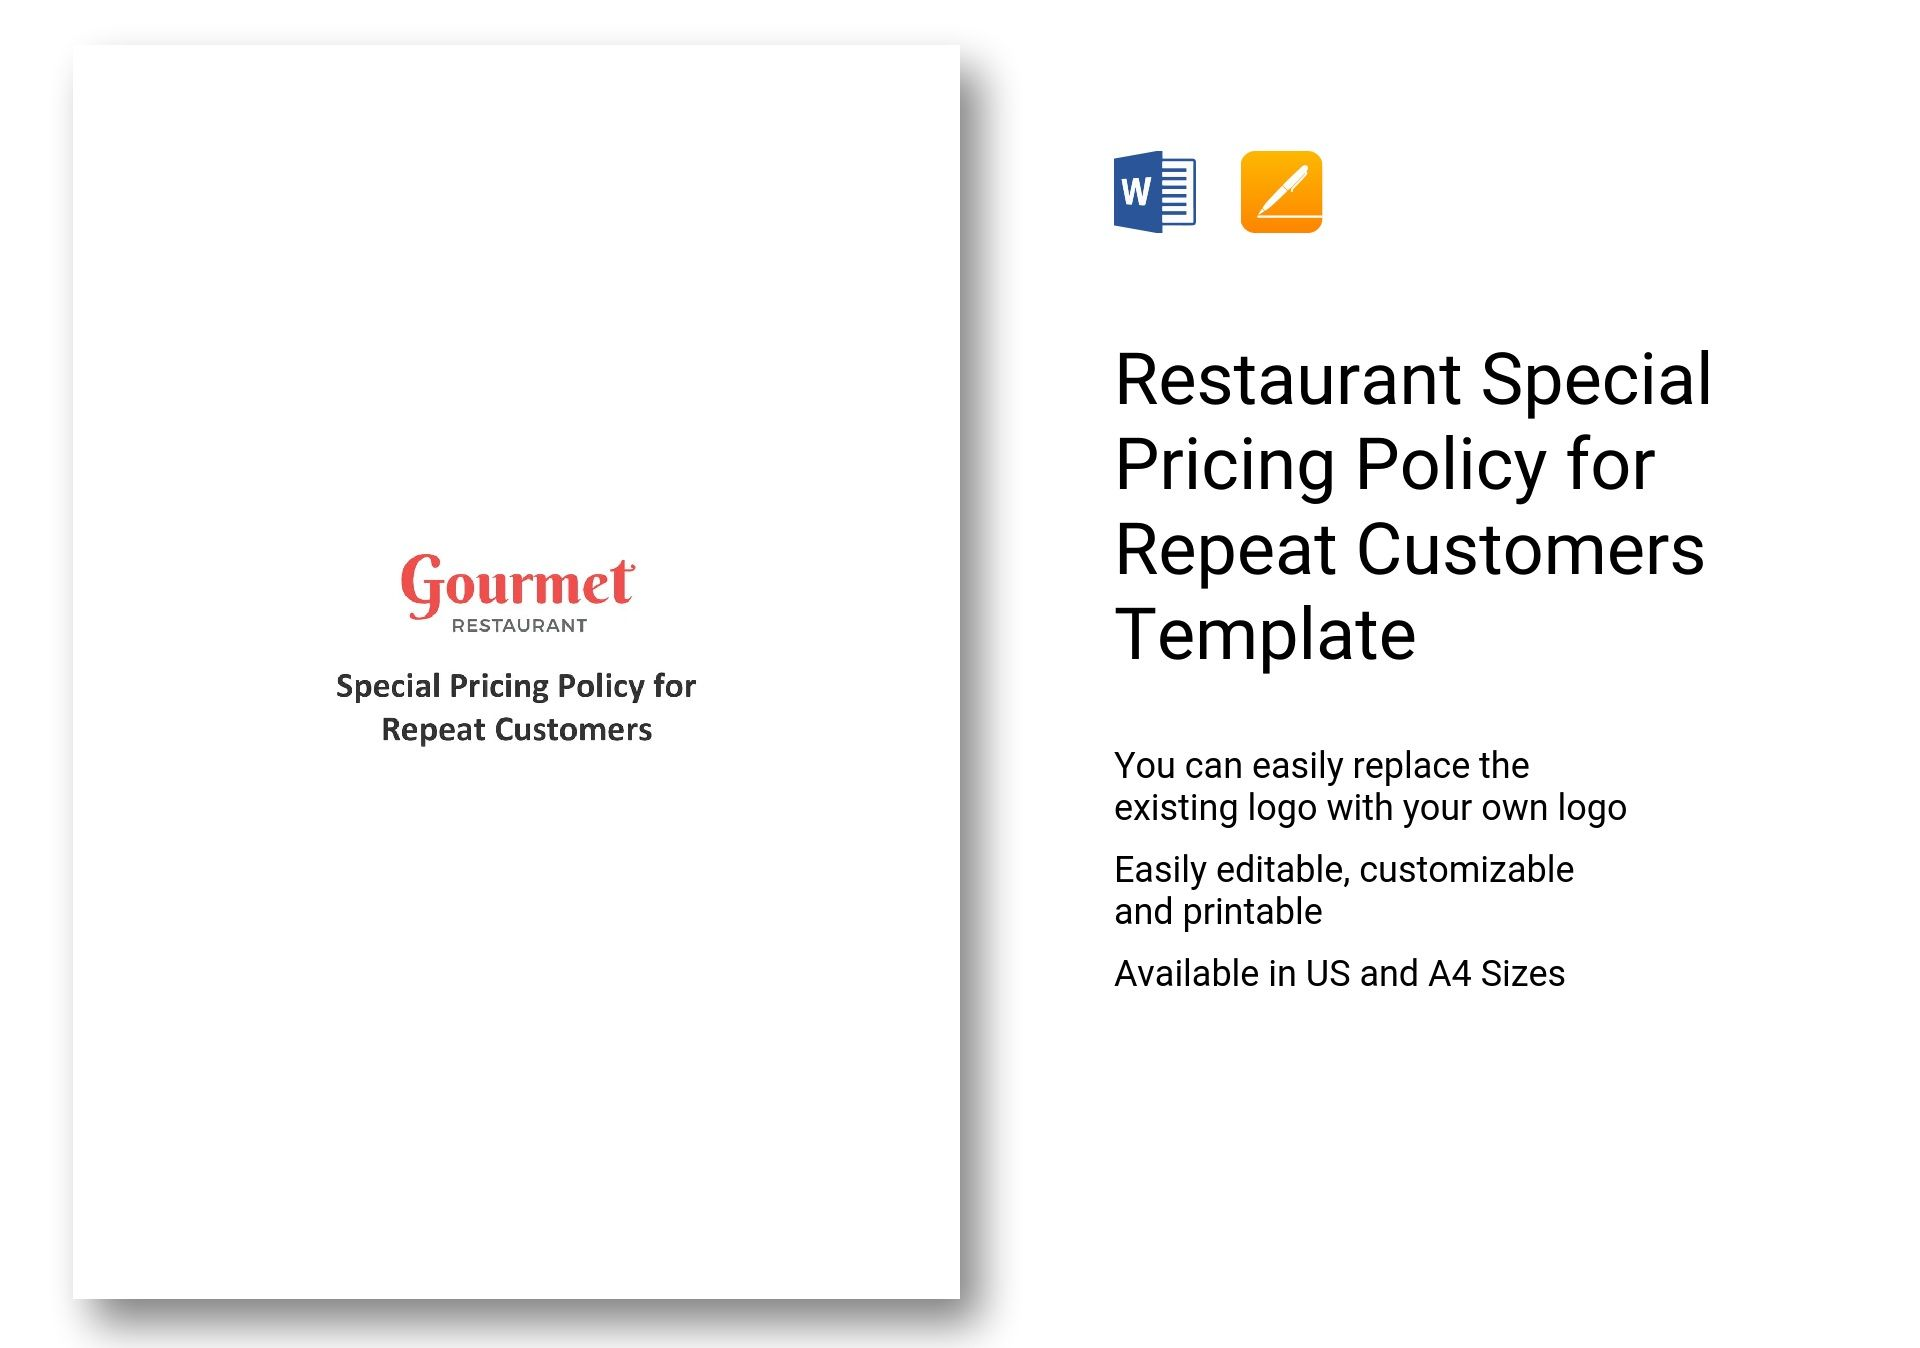 Restaurant Special Pricing Policy for Repeat Customers